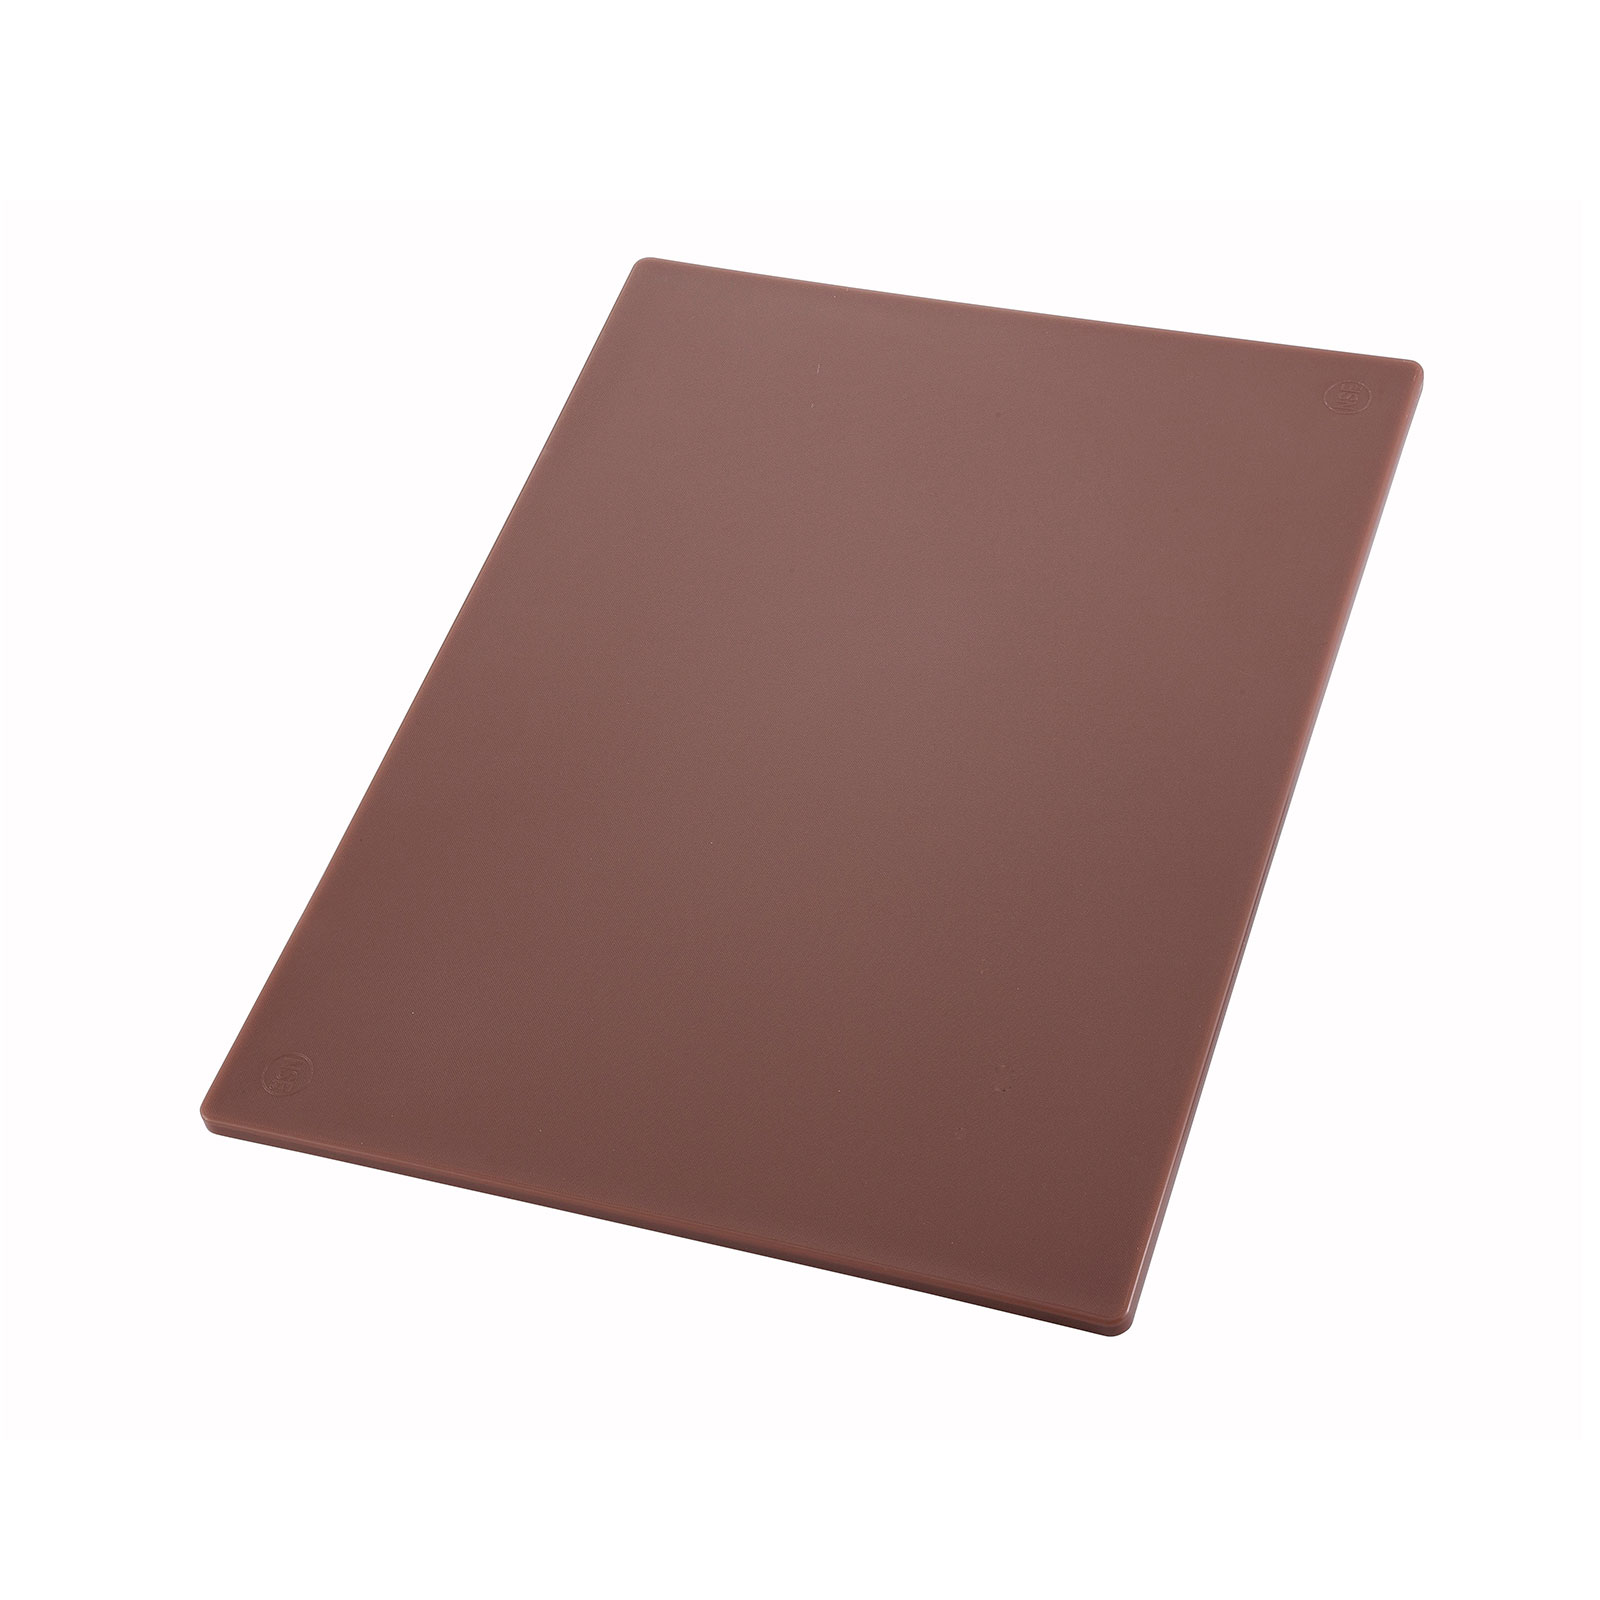 1700-140 Winco CBBN-1824 cutting board, plastic